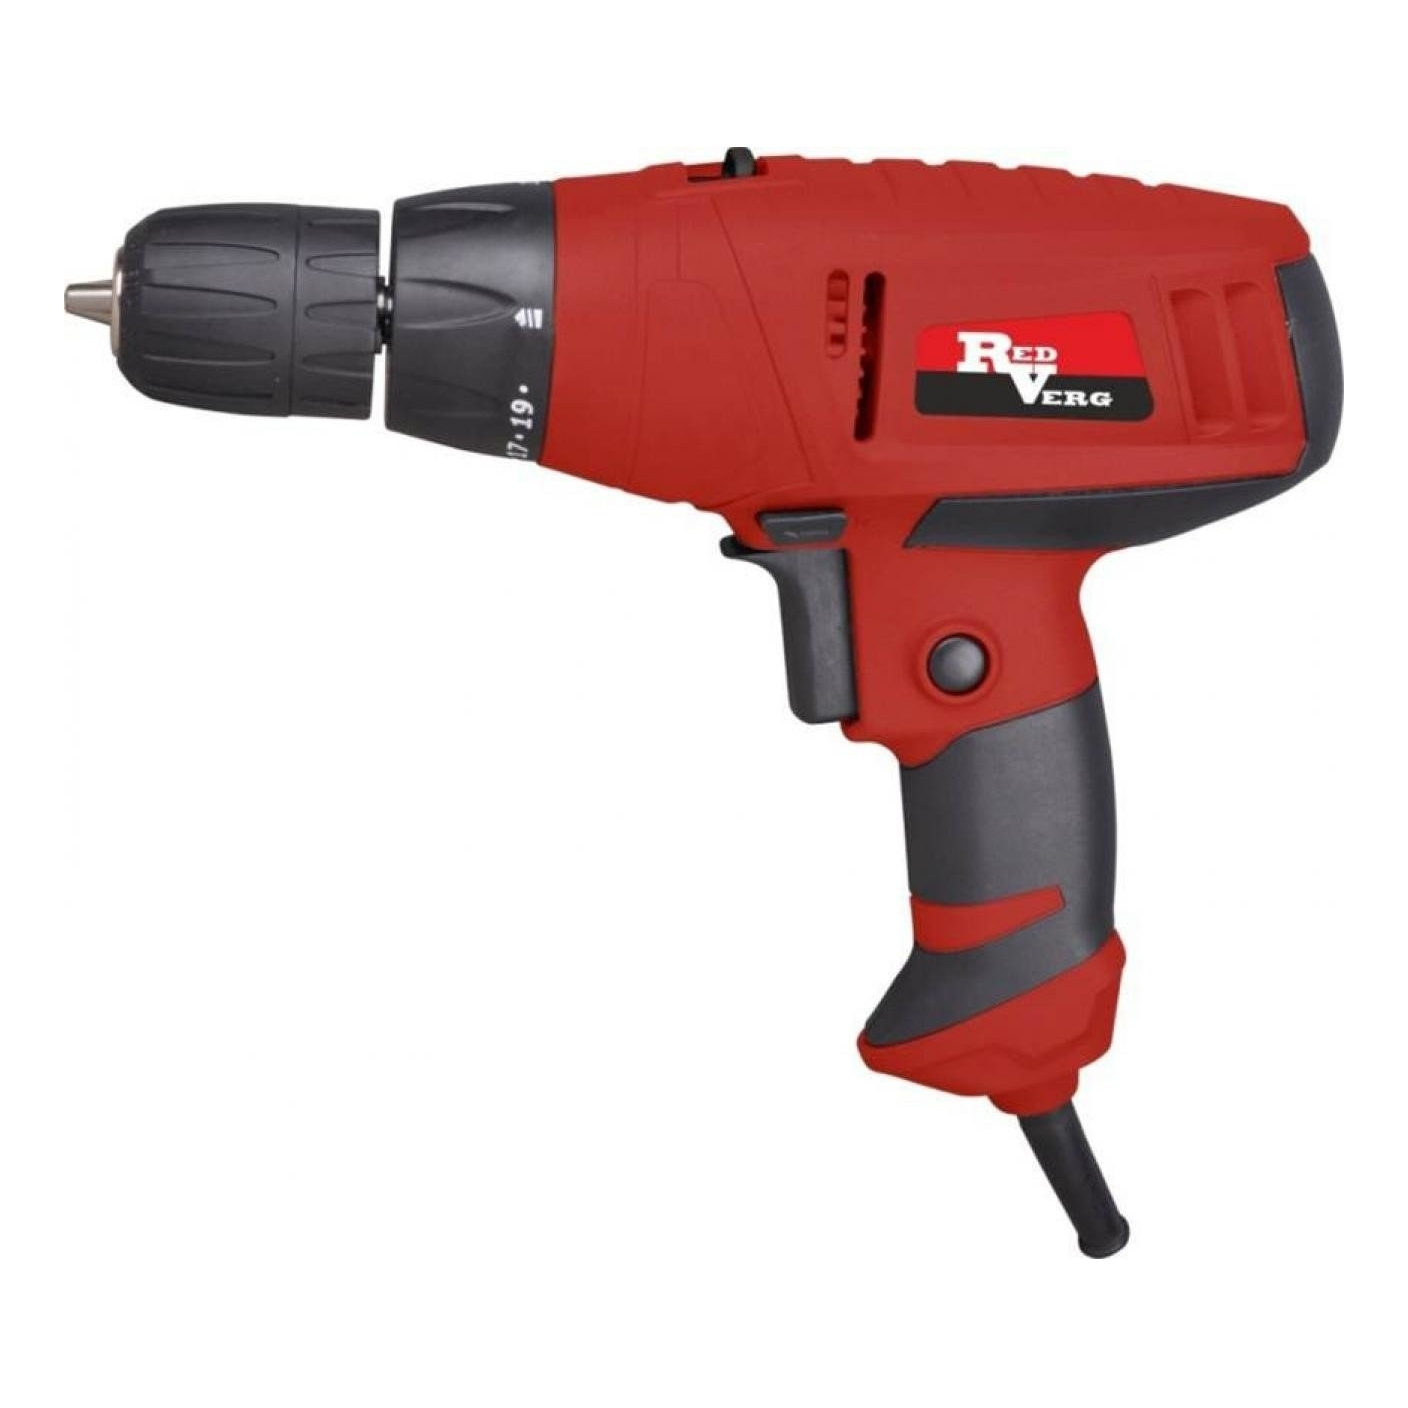 Drill electric screwdriver electric RedVerg RD-SD330/2 (Power 330 W, torque 15Нм, 2 speed) drill screwdrivers redverg rd sd400 2